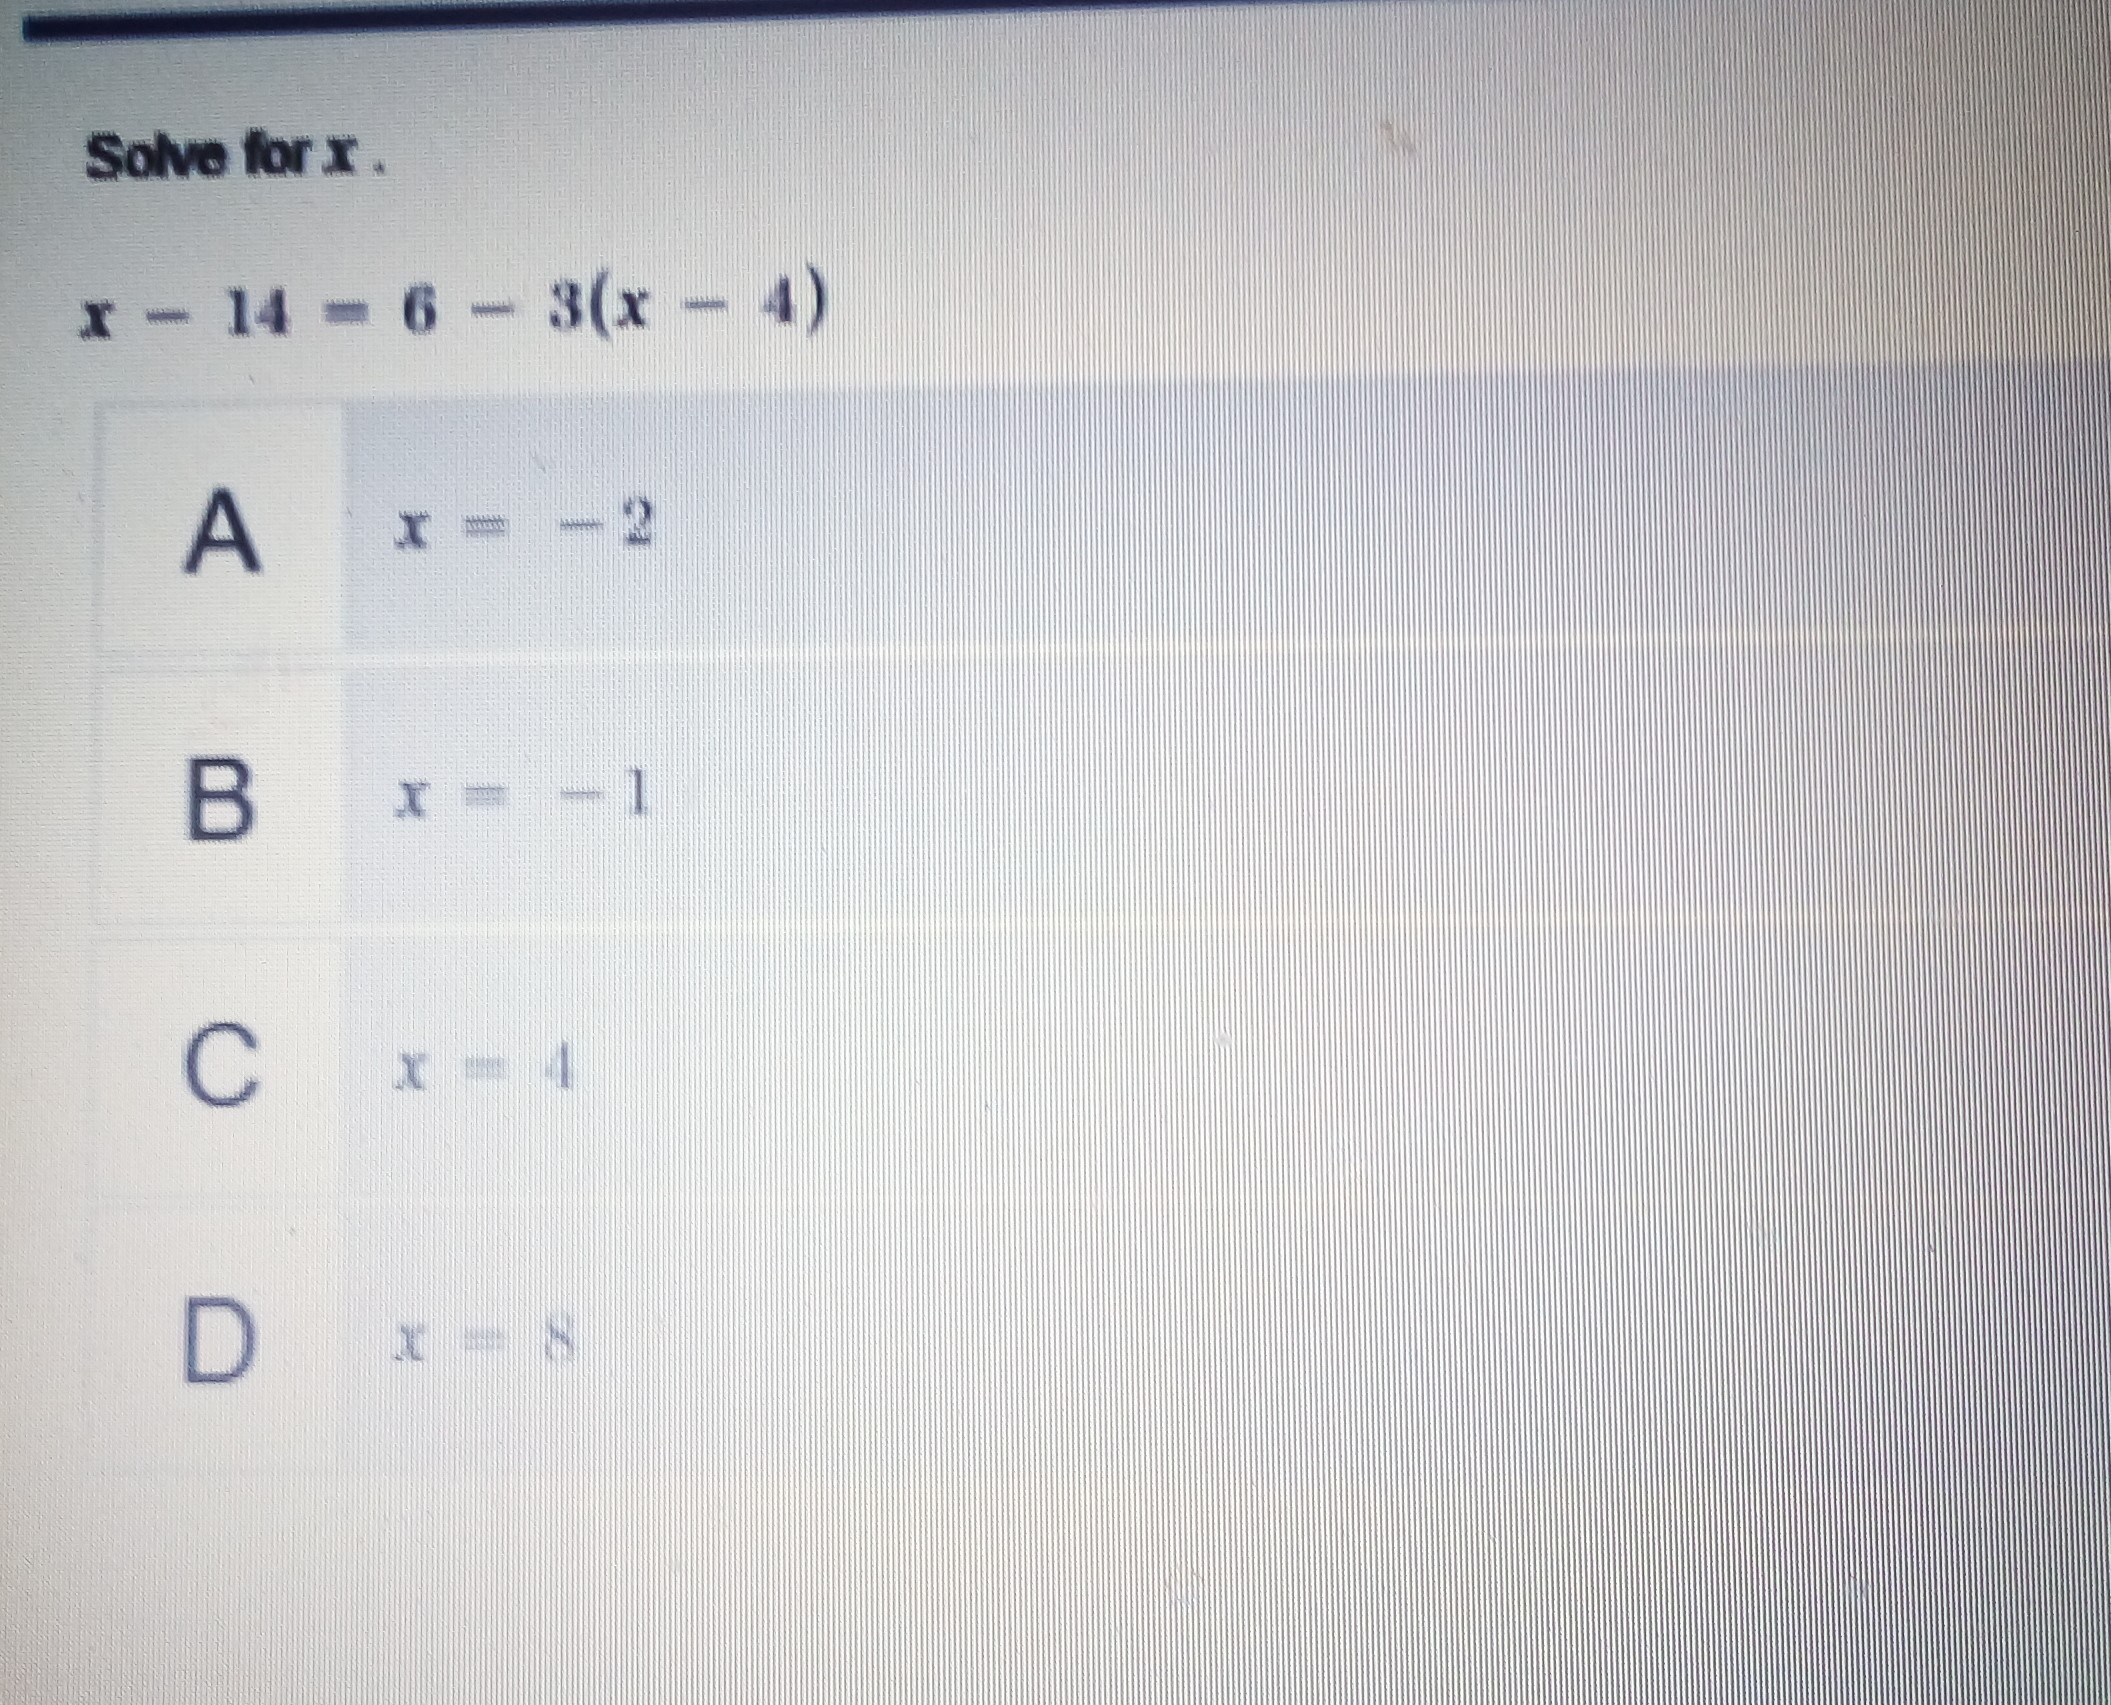 Solve for x. x- 14 6-3(x 4) B x= - 1